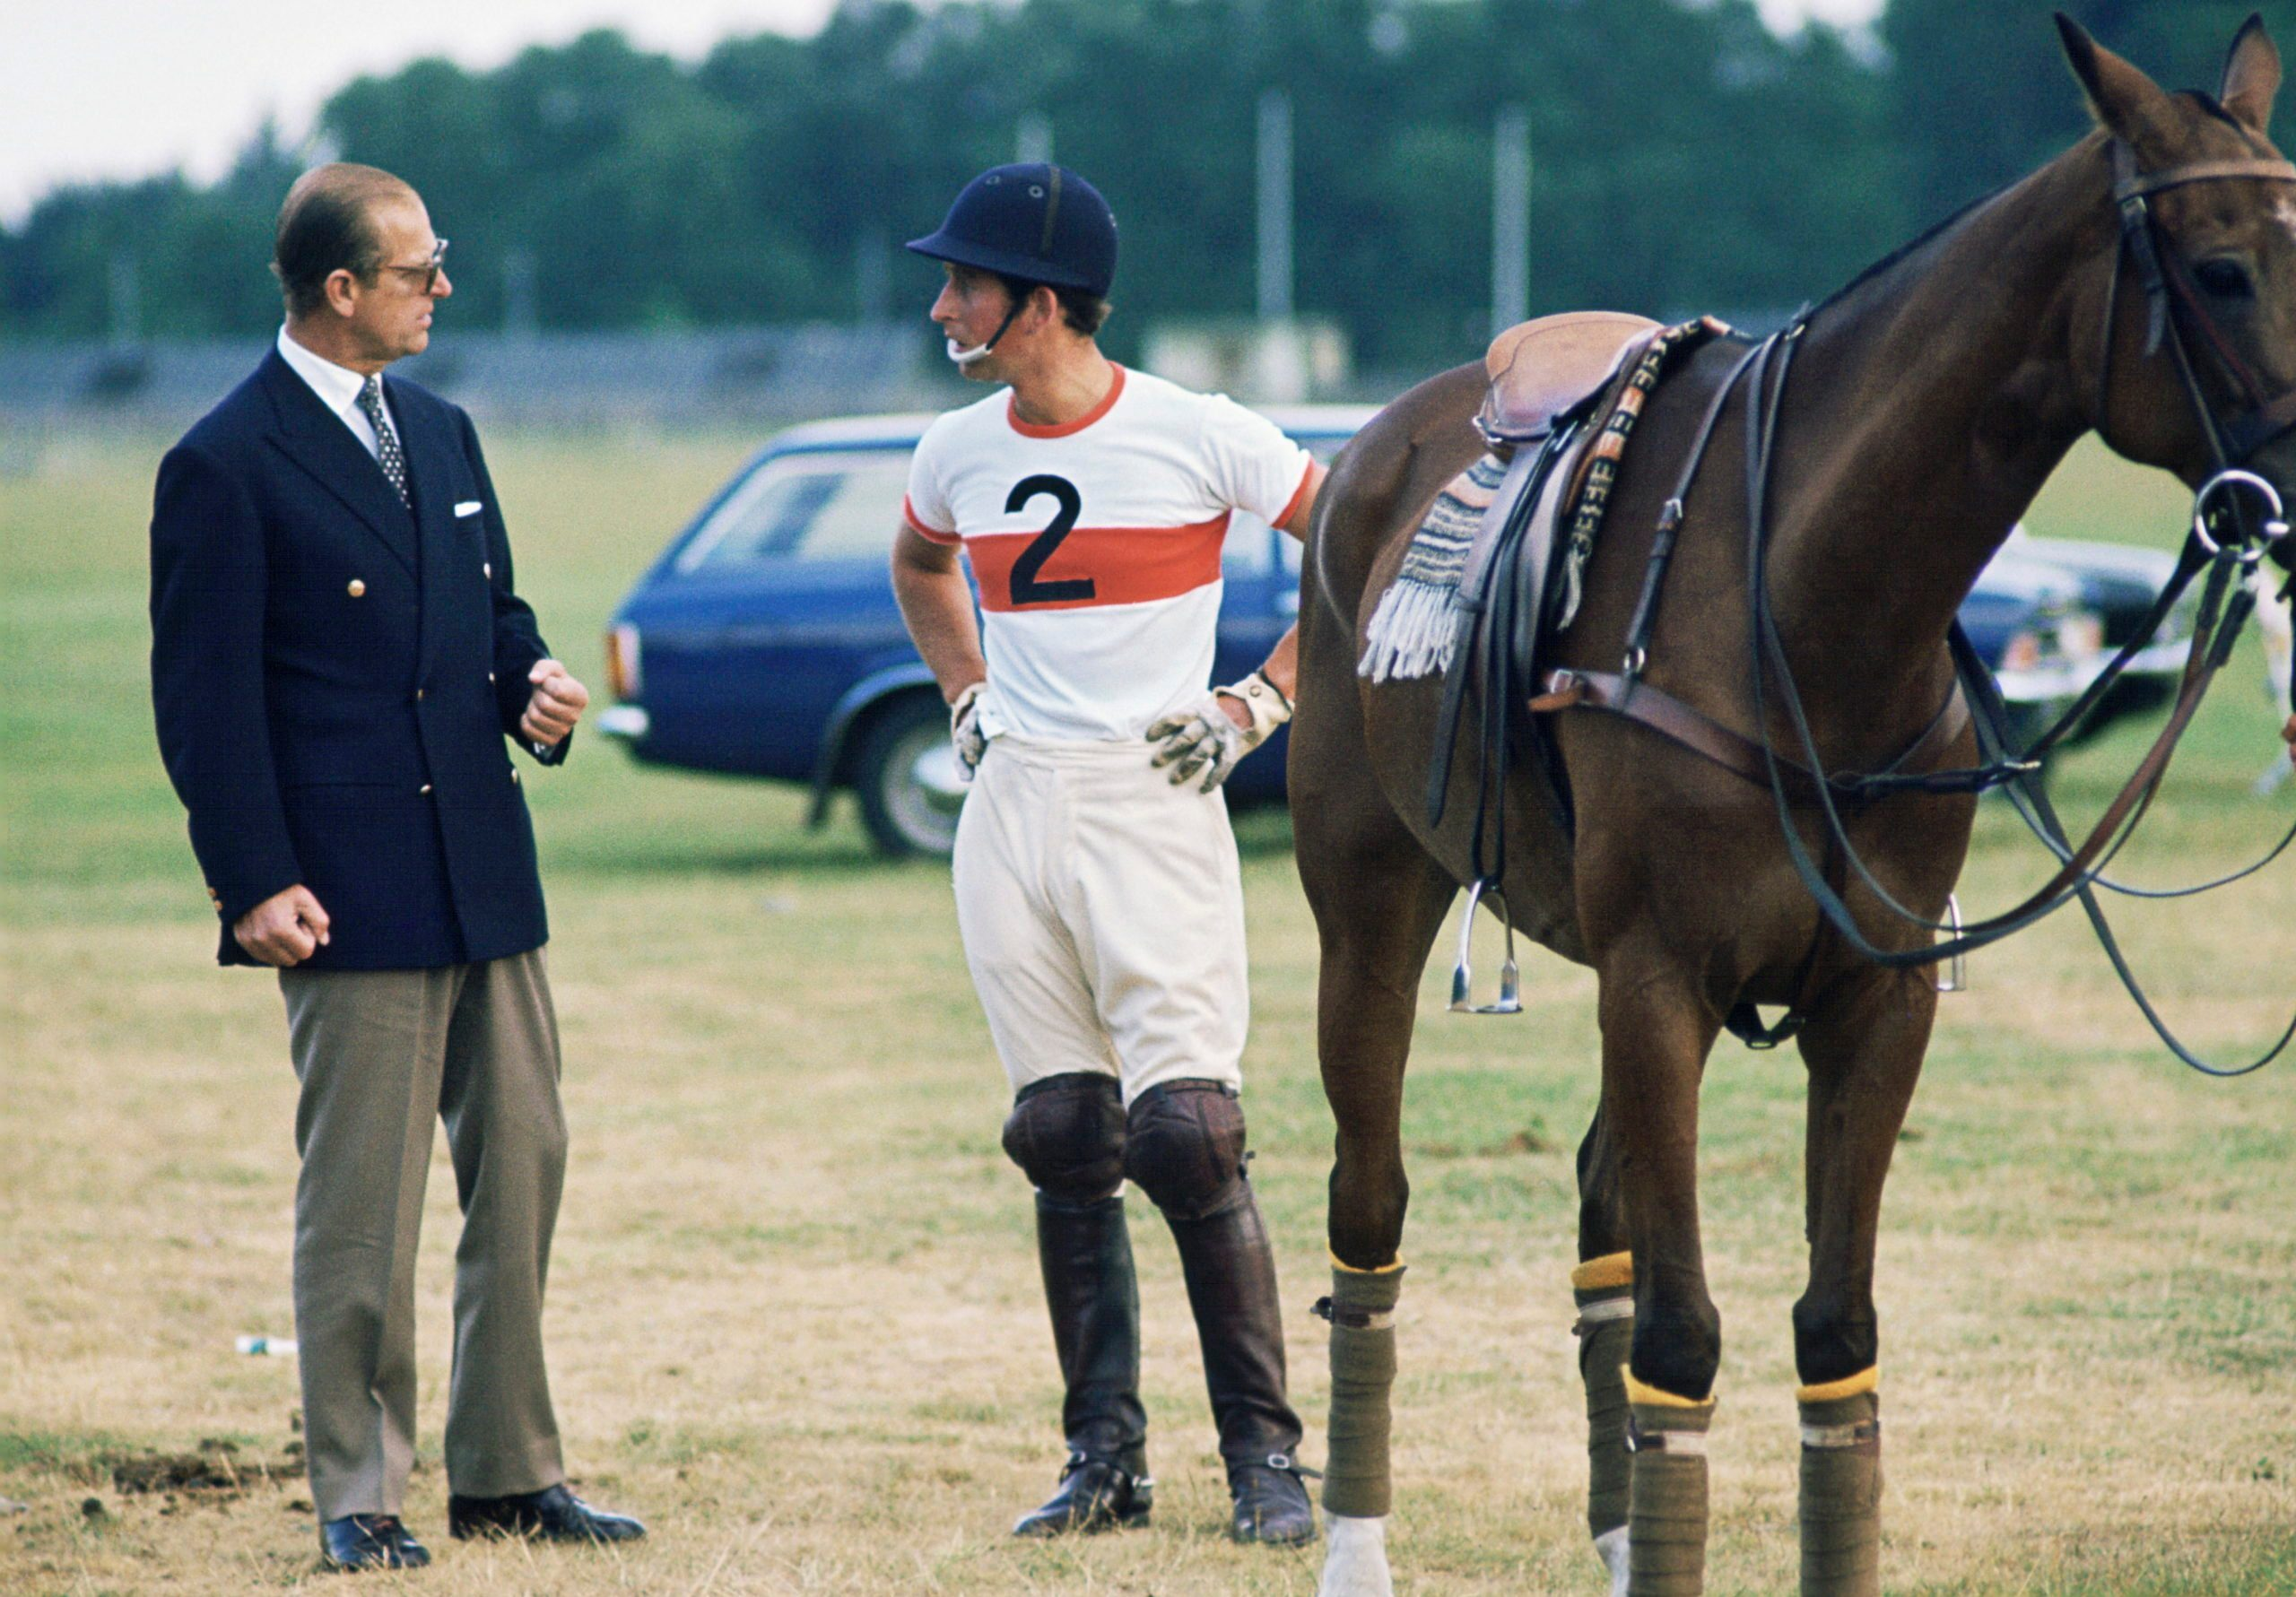 Charles And Philip At Polo